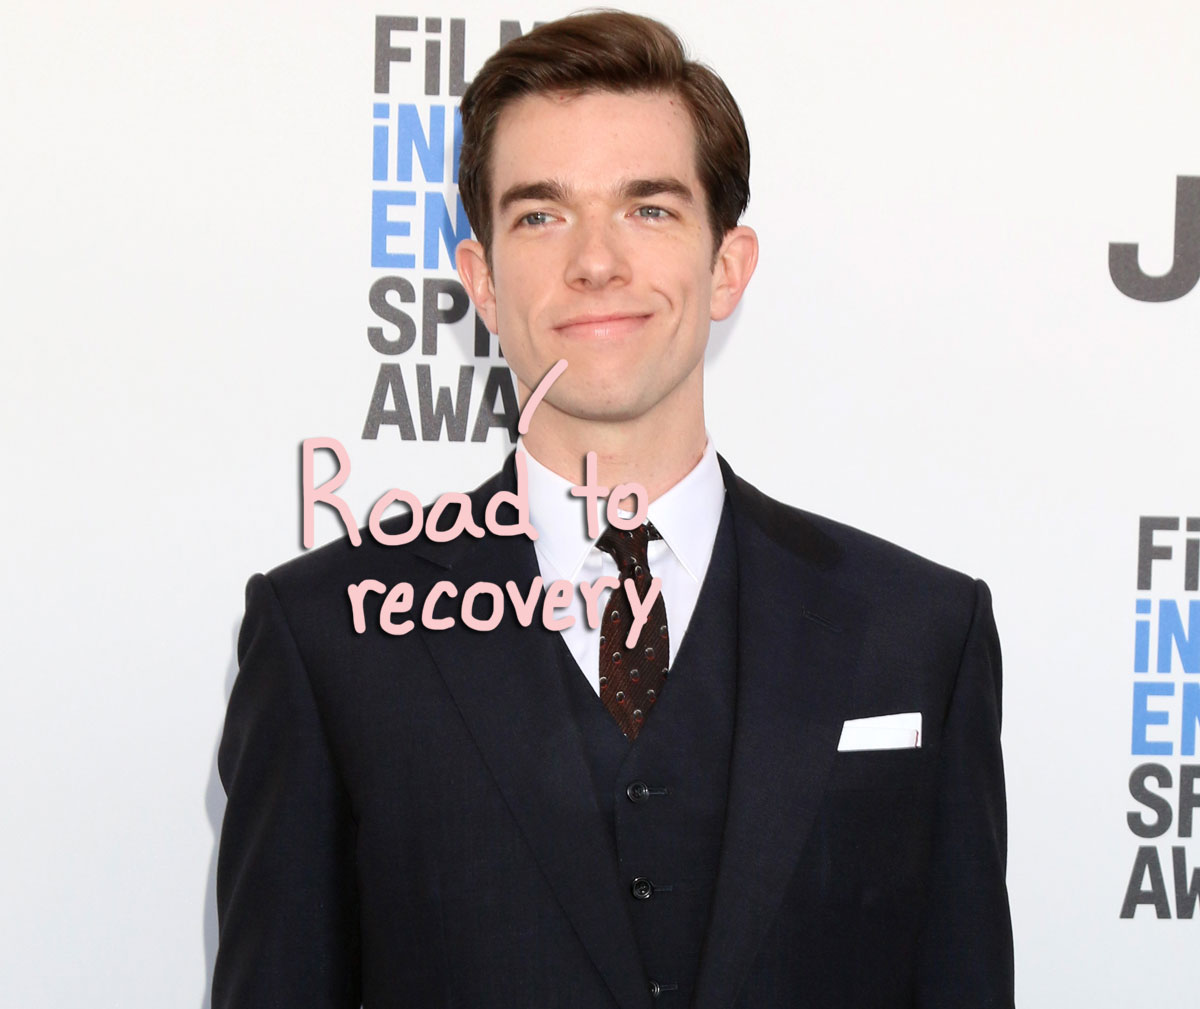 John Mulaney Is 'Committed To Getting Better' In Rehab Thanks To Support Of 'Small Circle Of Friends'